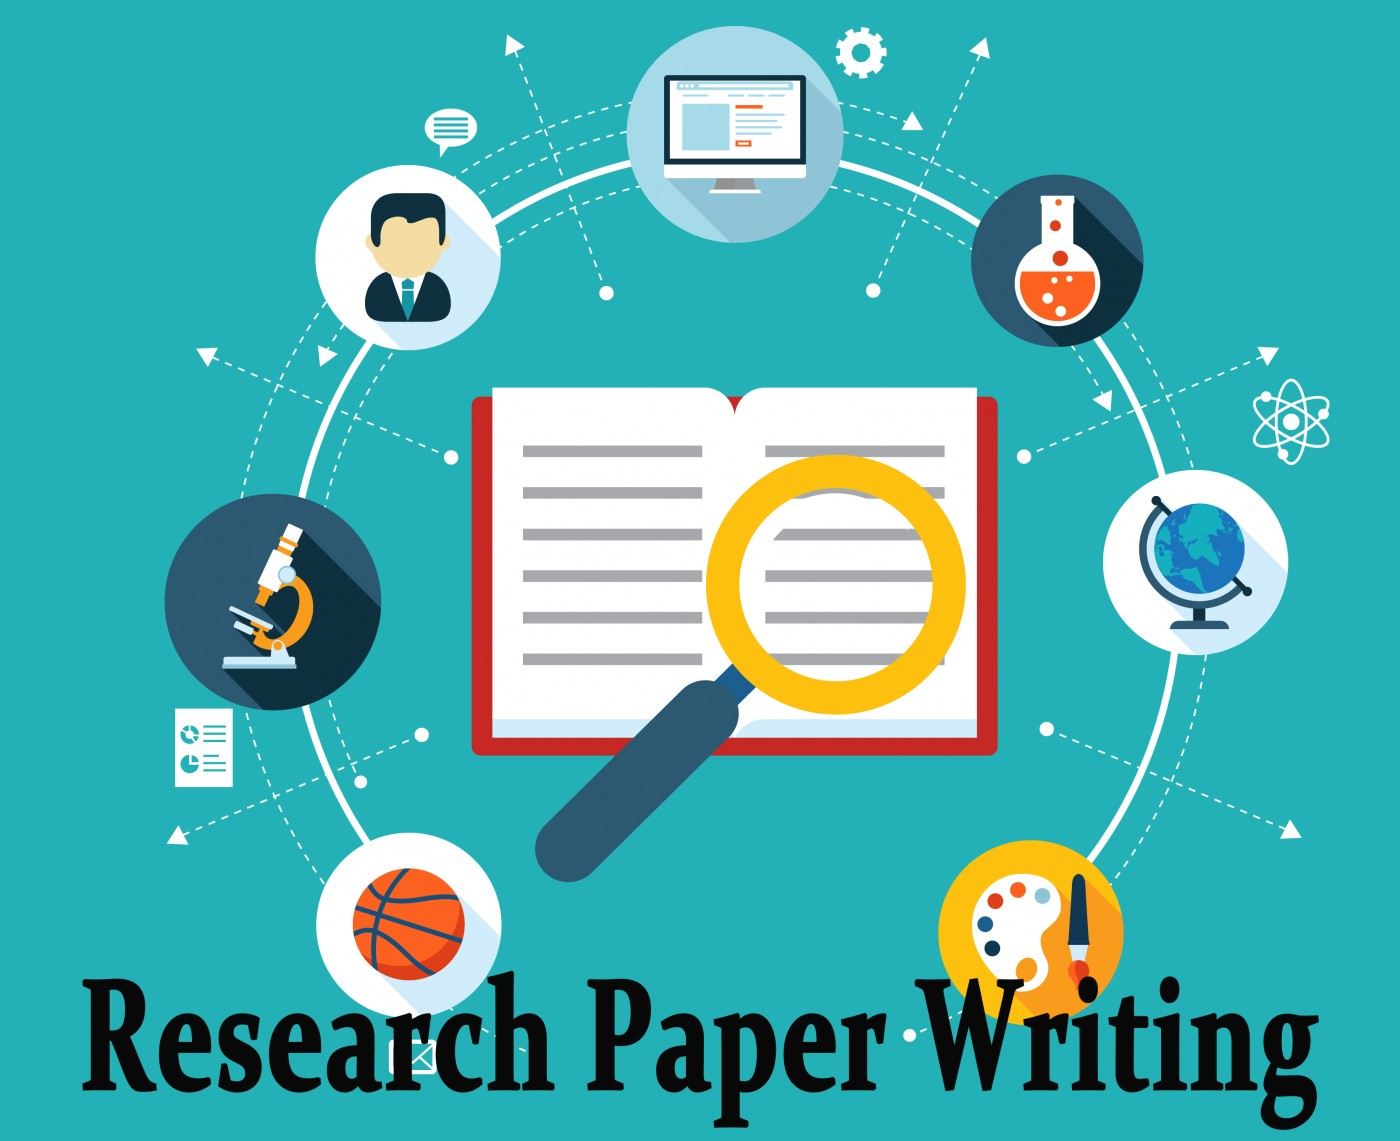 008 Writing Of Research Paper 503 Effective Fascinating Book Pdf Synopsis Review 1400